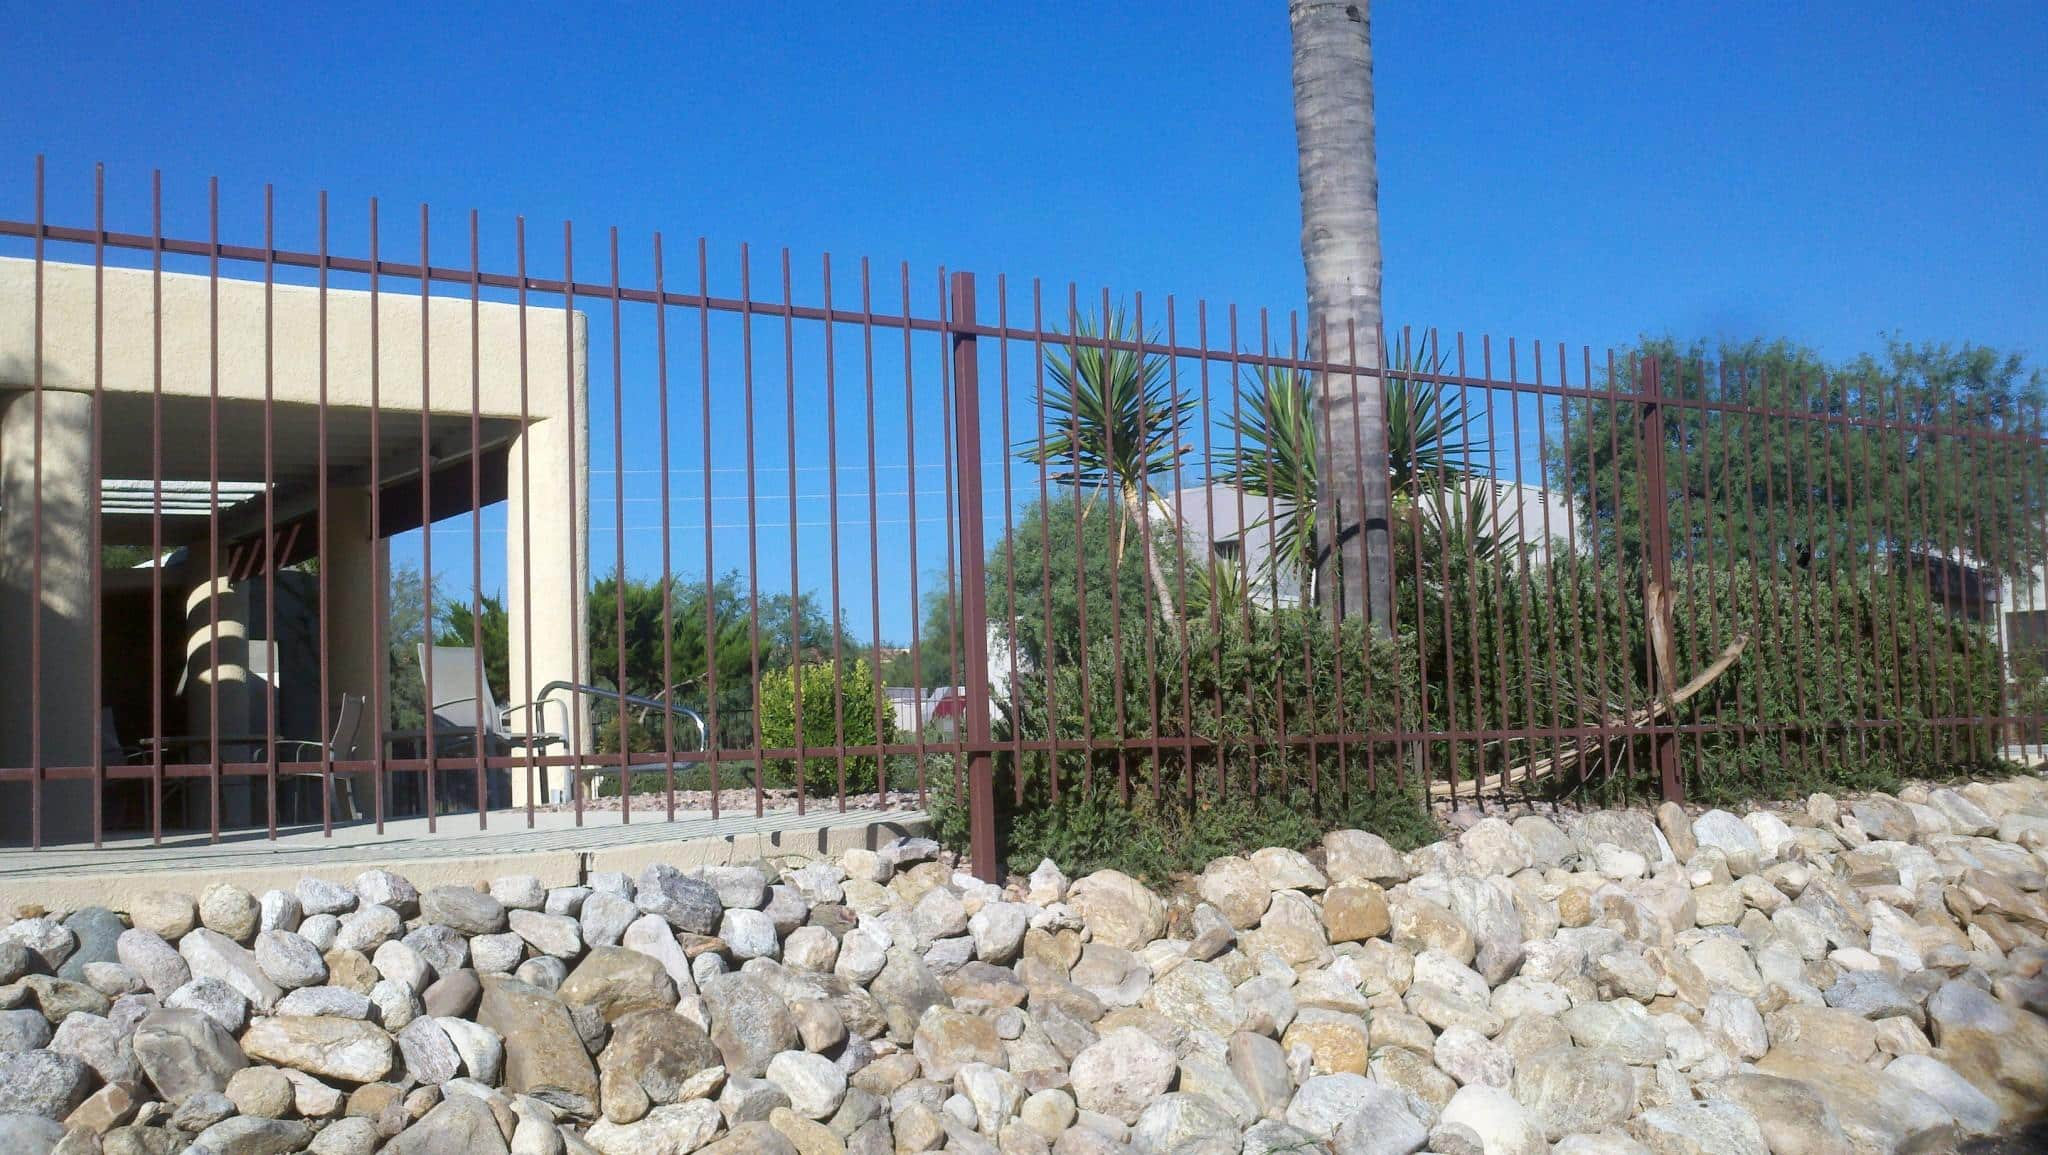 This Punched Garden Fence was installed around a concrete deck and a rocade in a subdivision of Marana AZ - IF104-5 EP